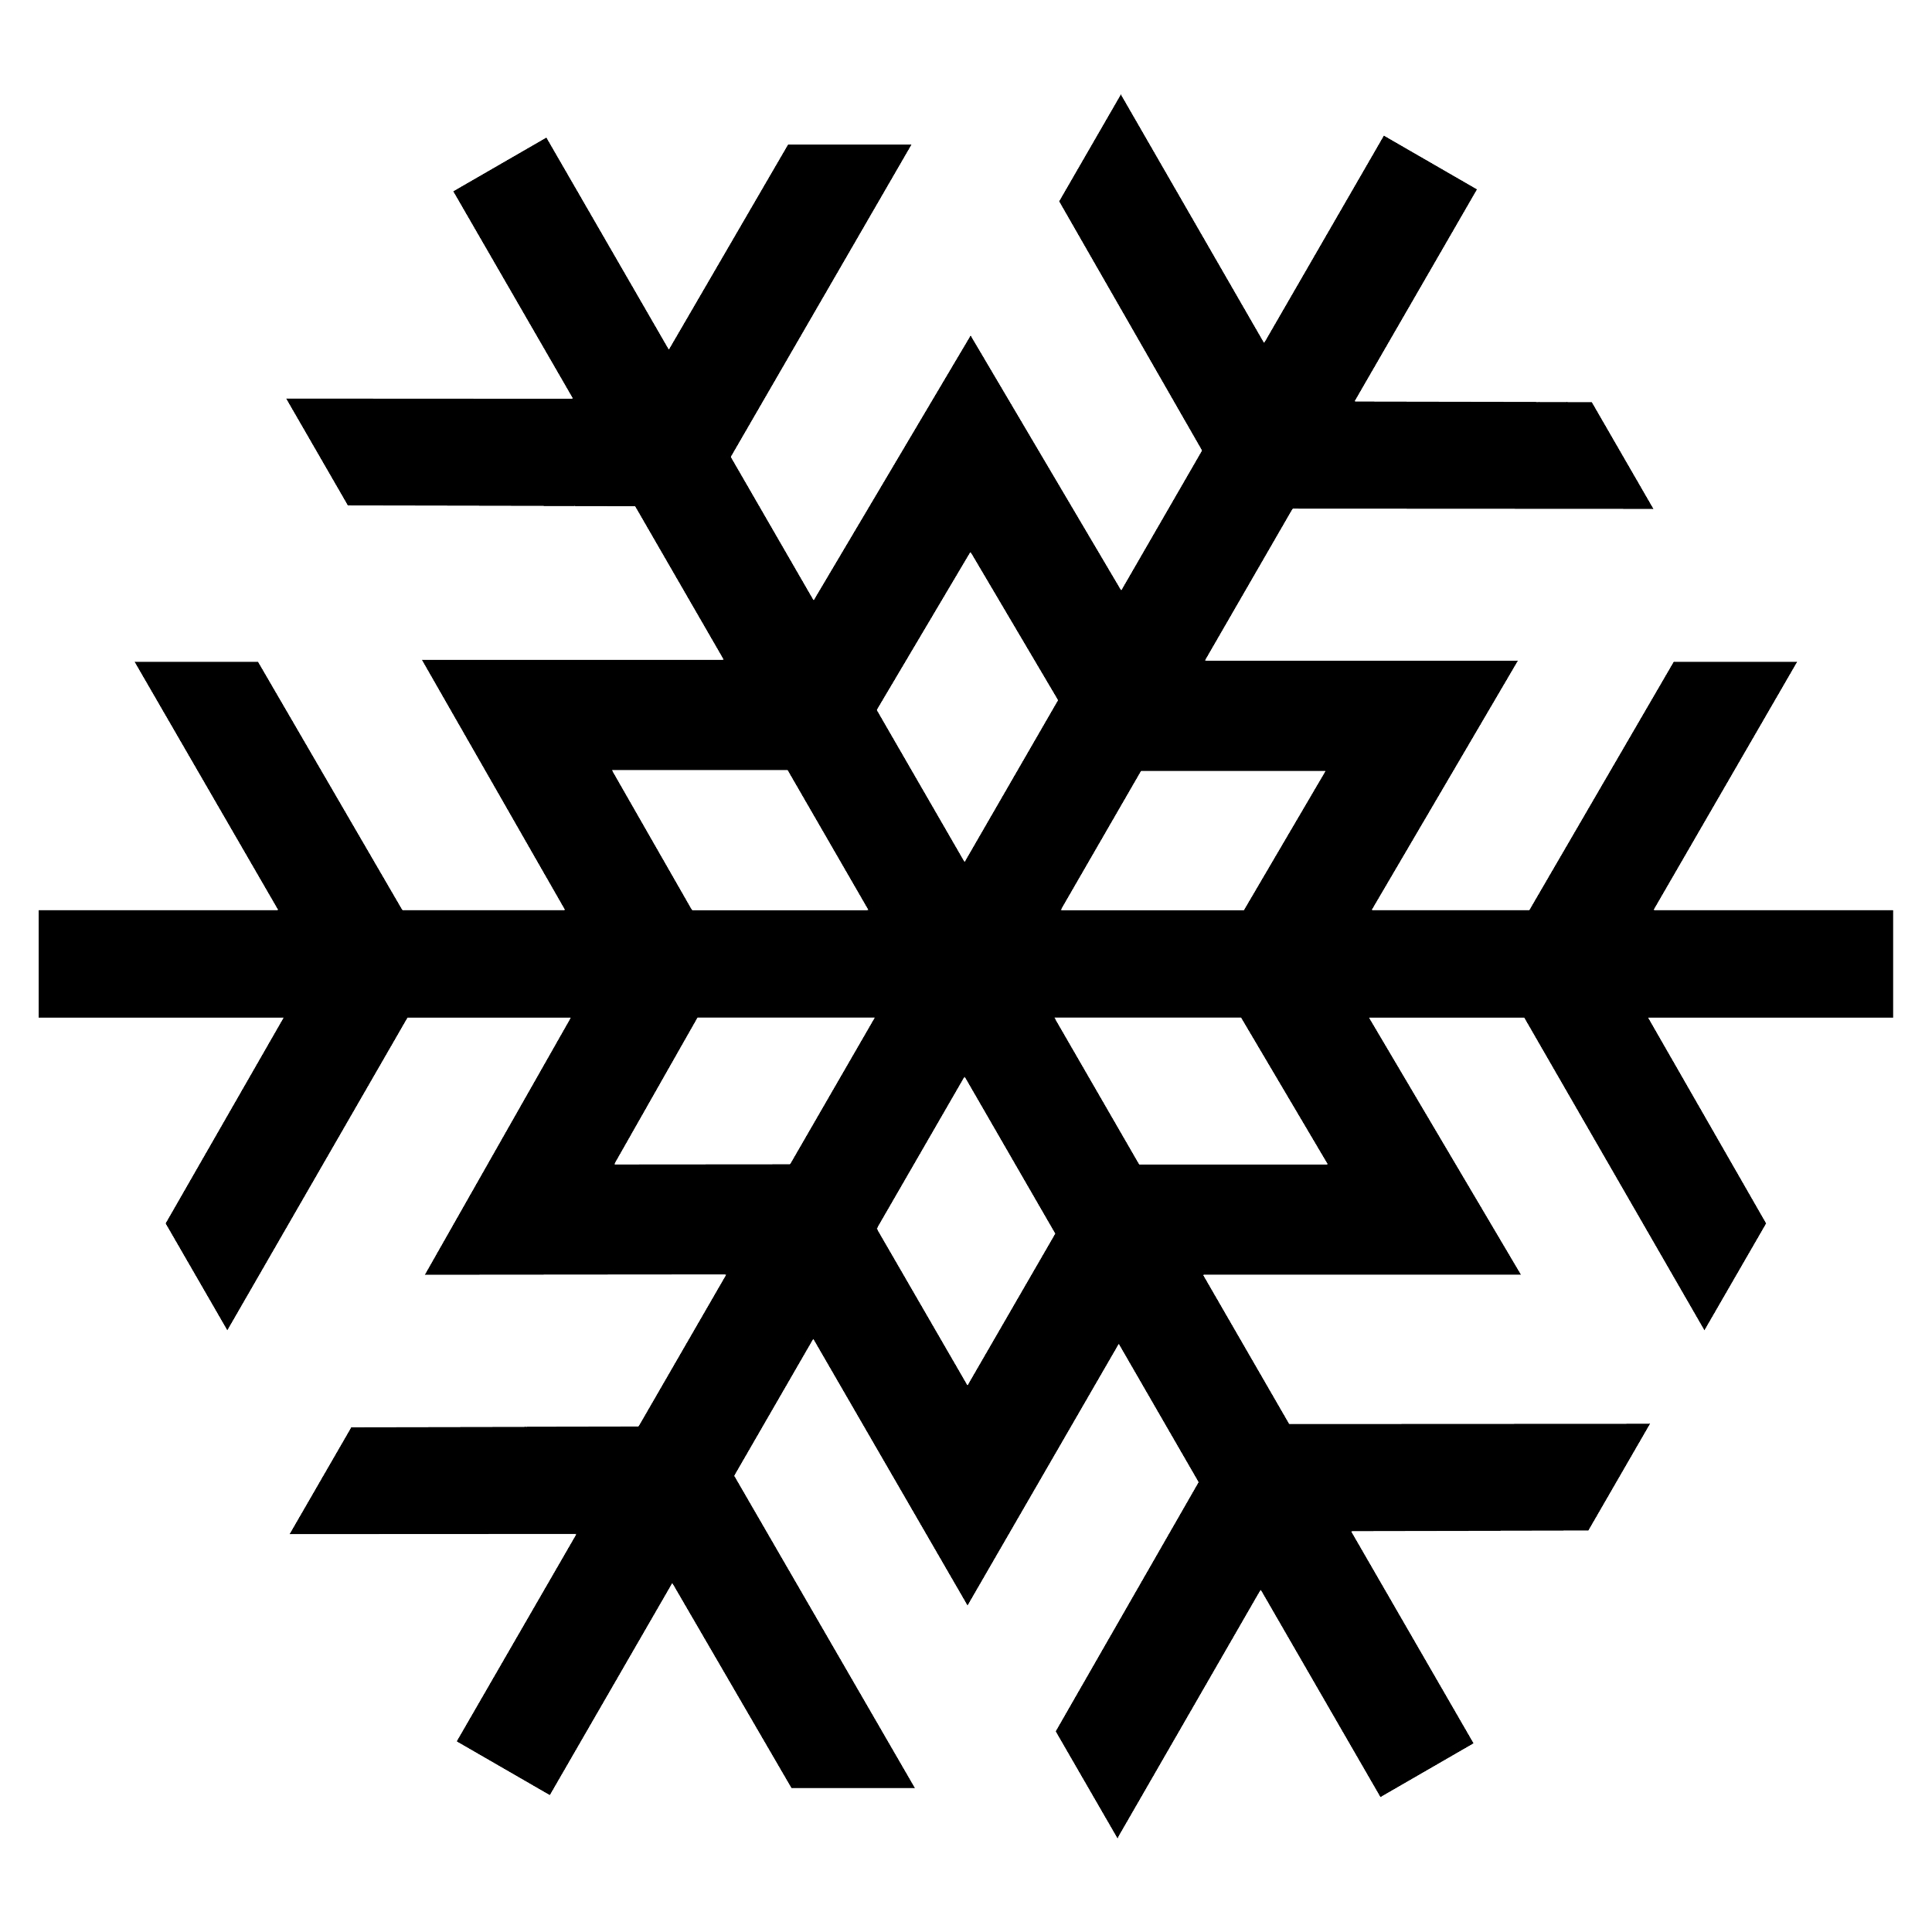 Snowflake clipart solid white vector transparent 28+ Collection of Chunky Snowflake Clipart | High quality, free ... vector transparent